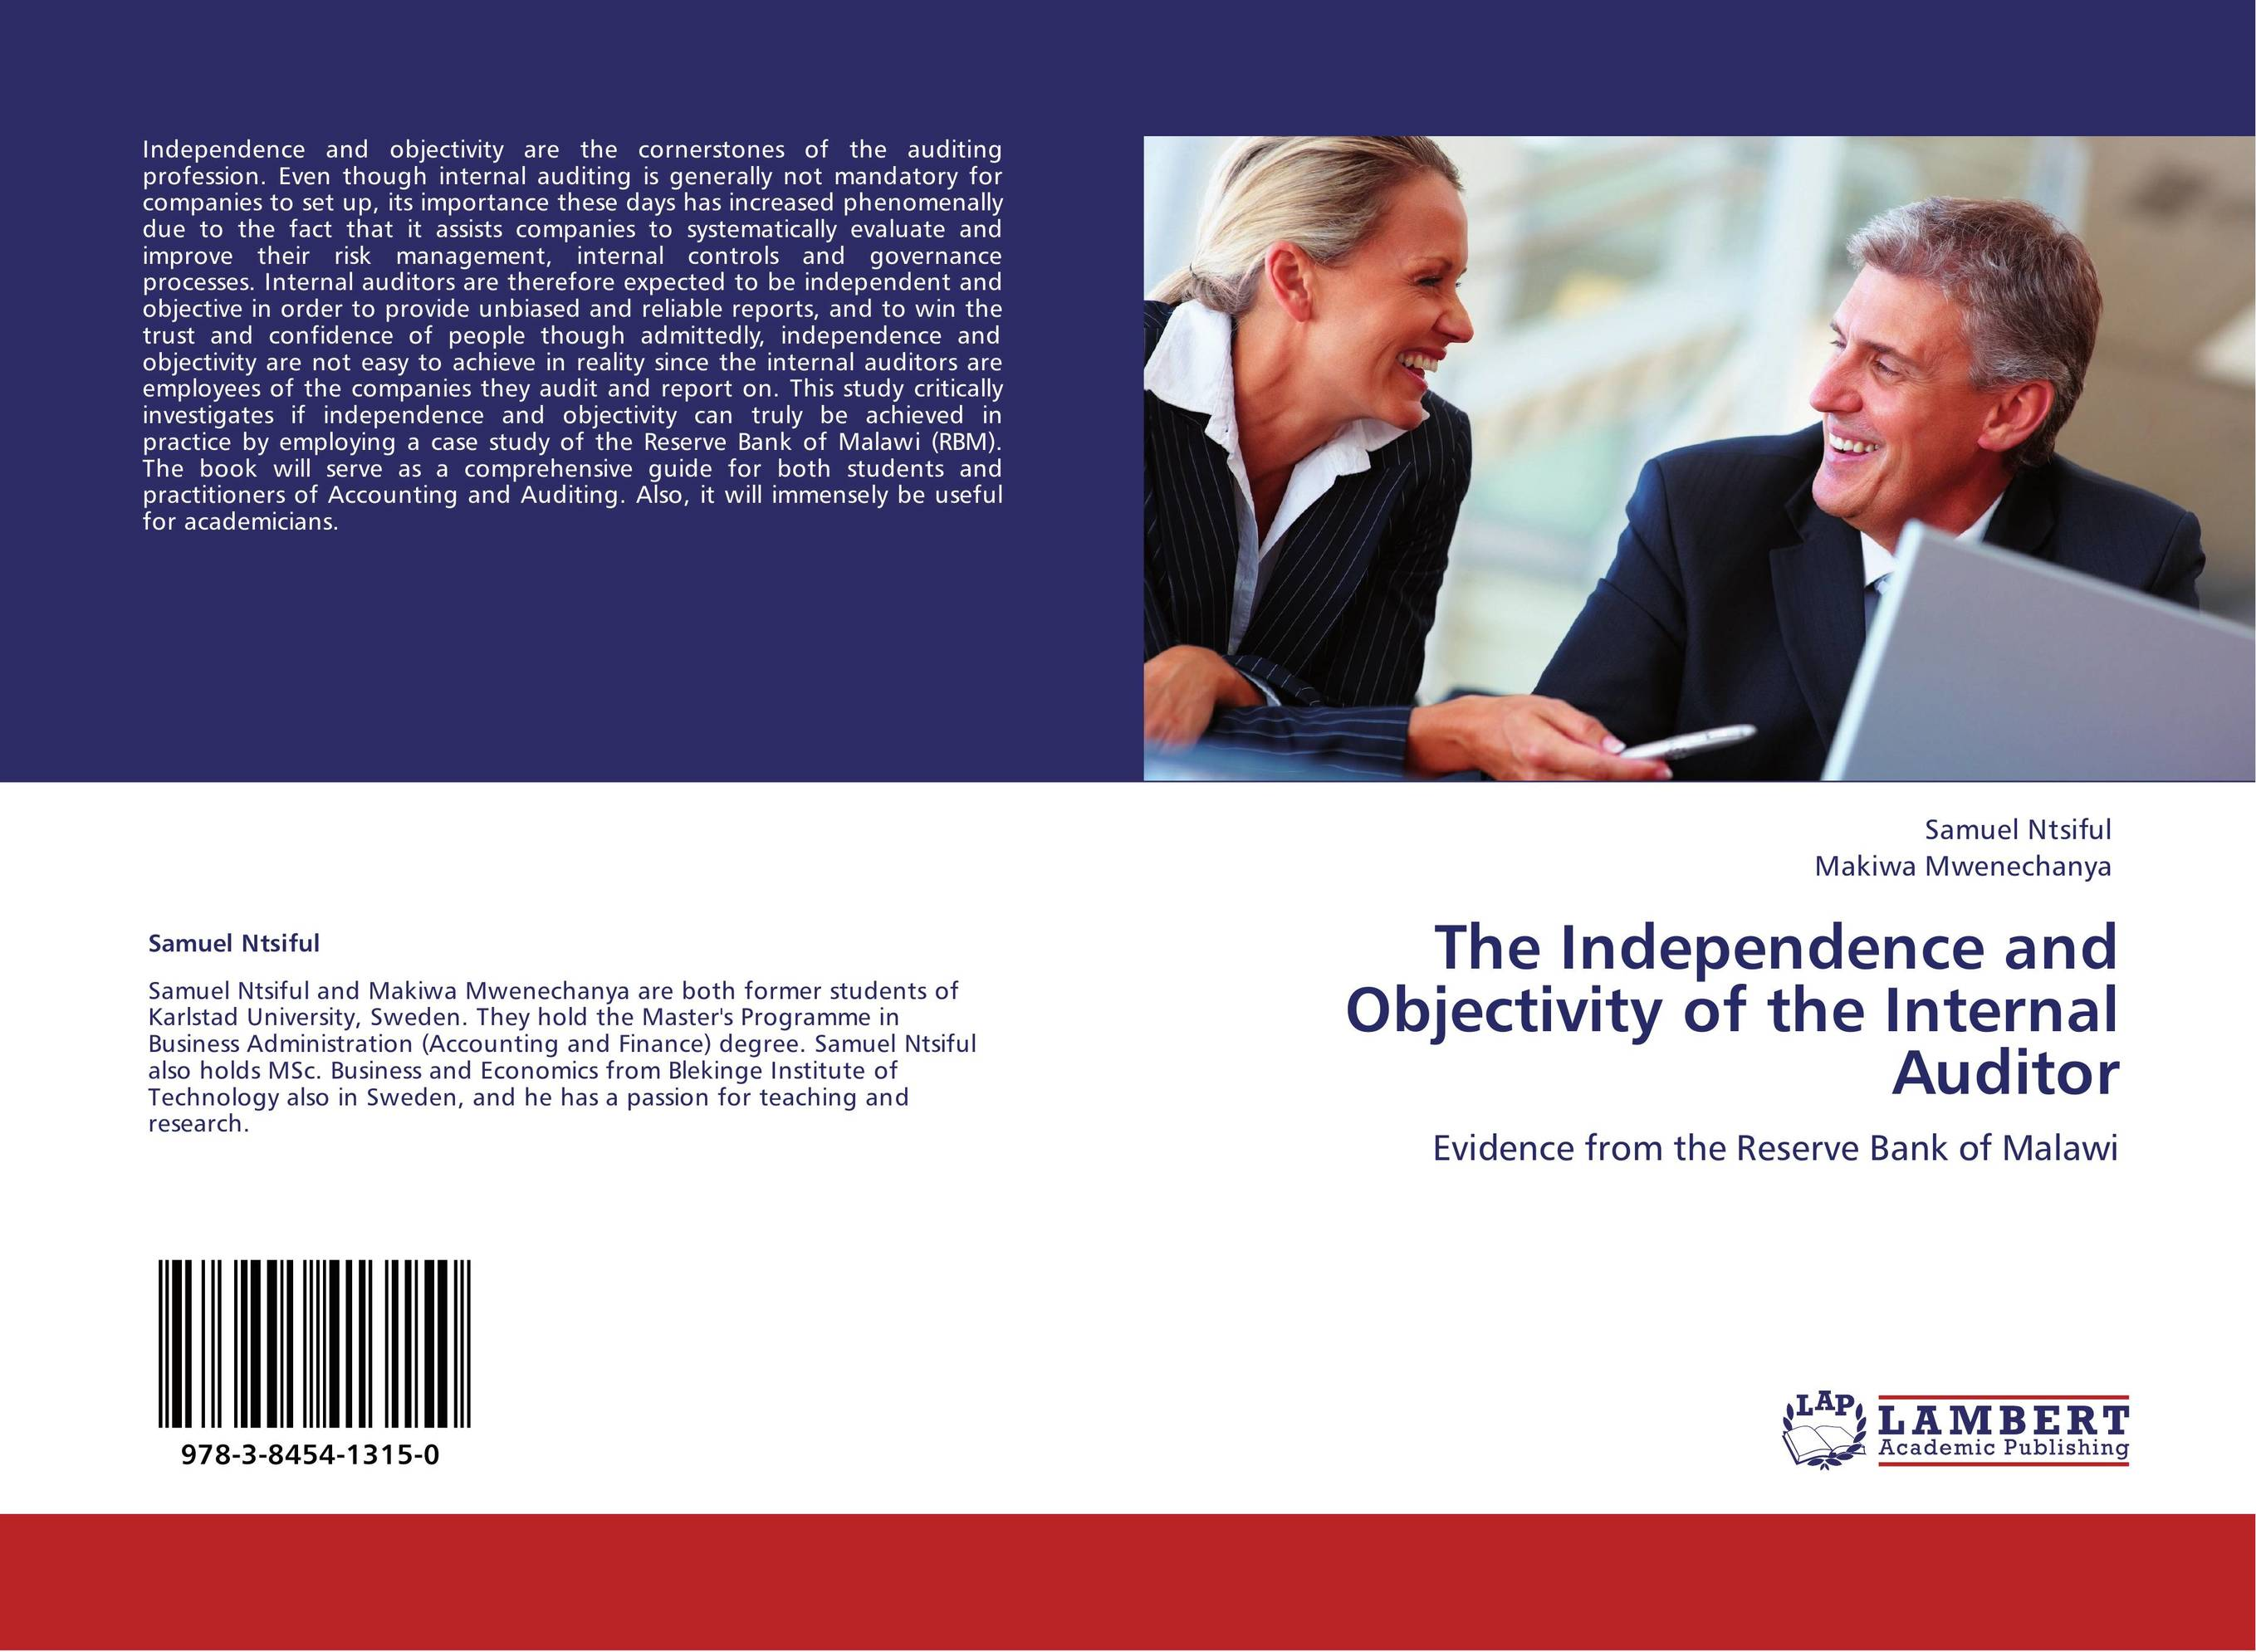 objectivity vs independence If independence or objectivity is impaired in fact or appearance, the details of the impairment must be disclosed to appropriate parties.